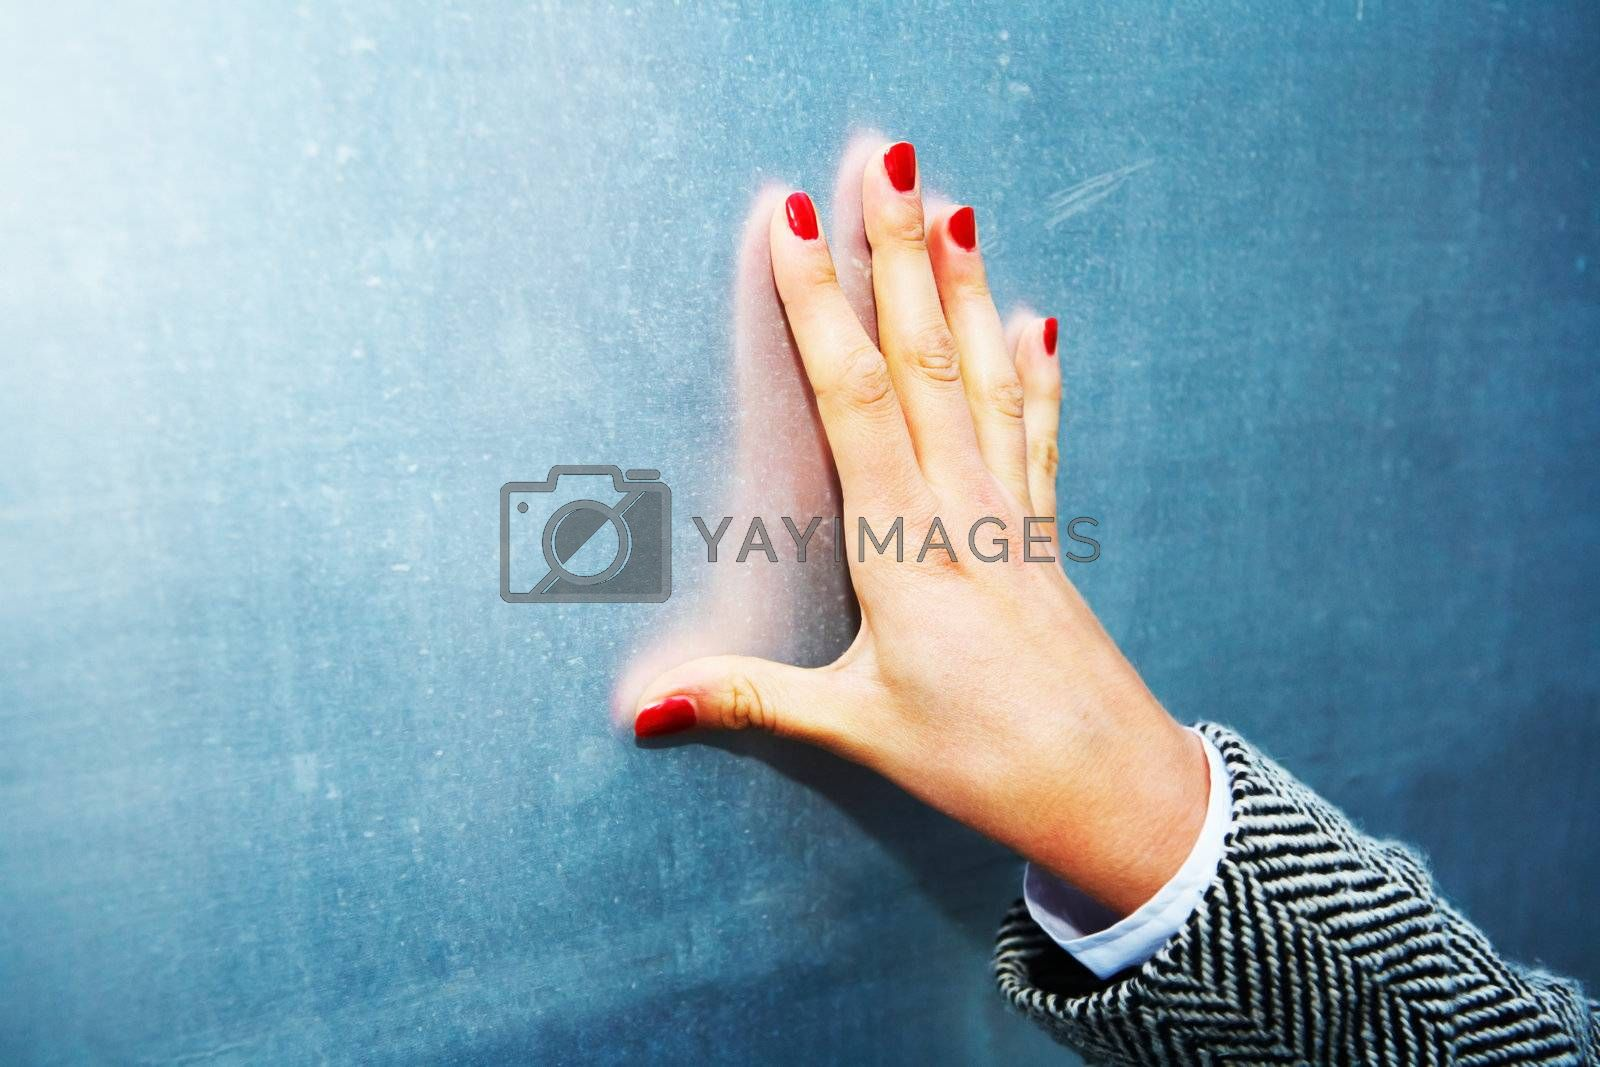 Royalty free image of Hand by Luminis